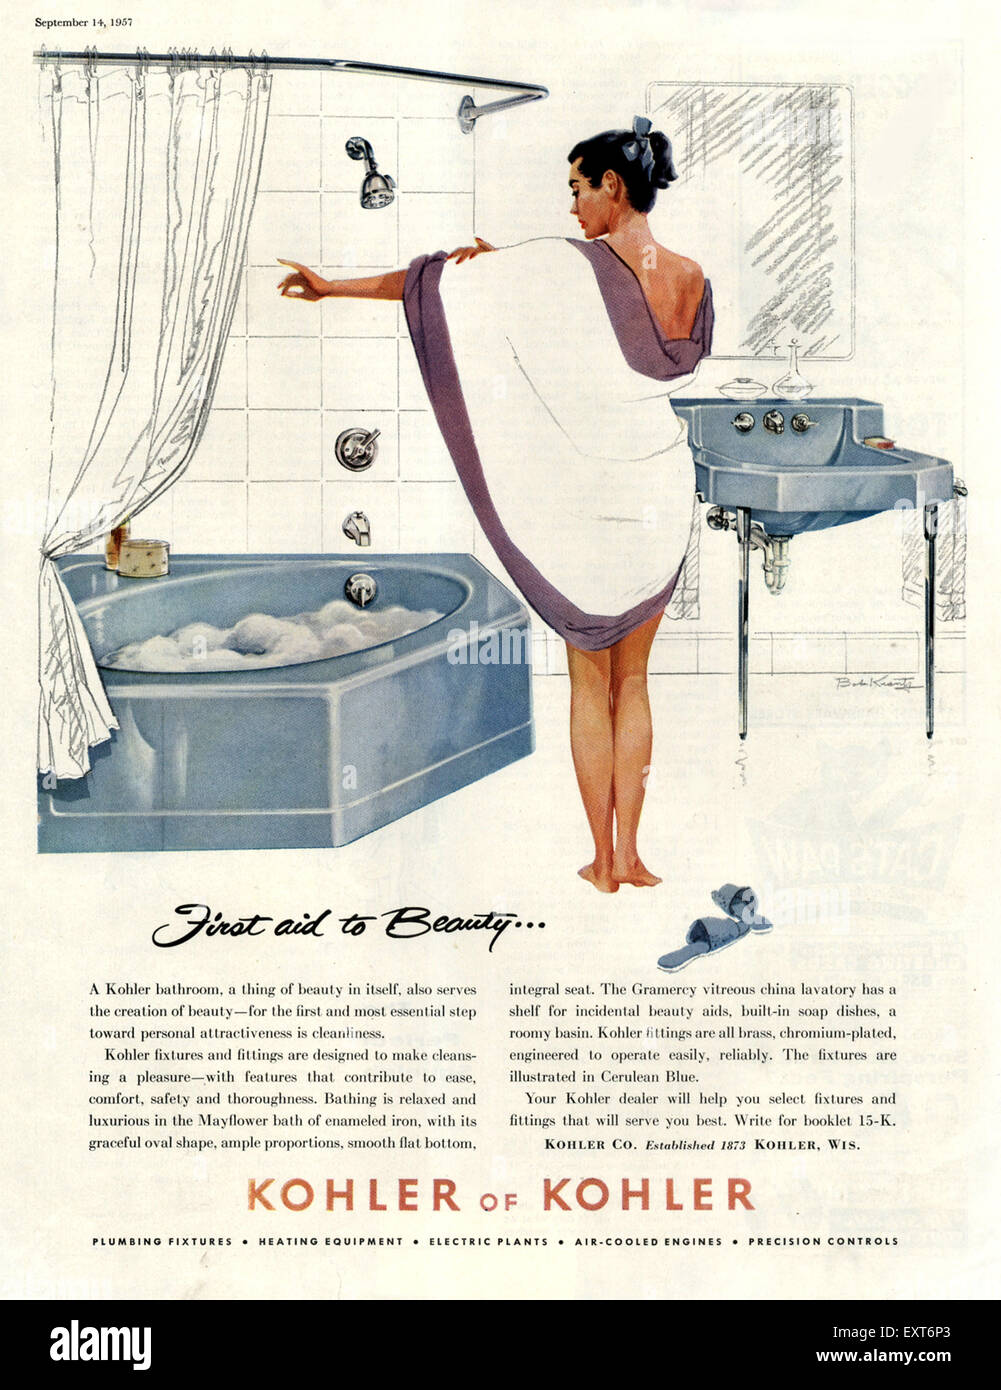 1950s USA Kohler Magazine Advert Stock Photo: 85354699 - Alamy